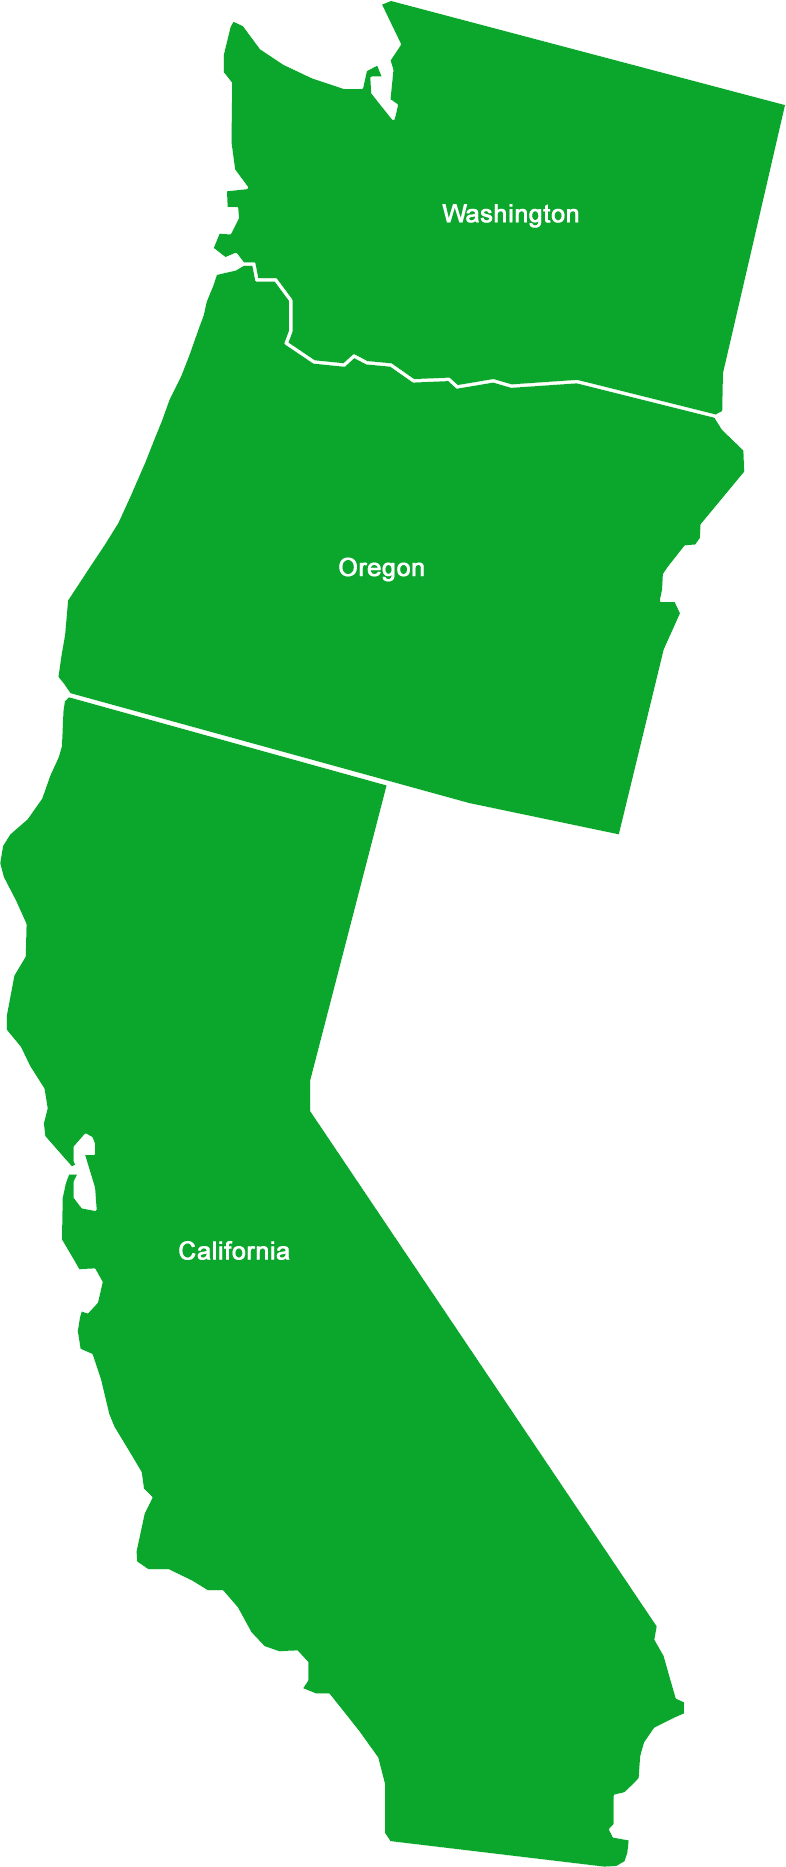 Evergreen Dreaming - Californians Continue to Flock to ... on map of washington state wine country, casino locations in washington state, map california to washington, map of washington state lakes, major highways in washington state, map of california and new zealand, map of washington state mineral, map of united states with capitals and national parks, map of california and san francisco, map of casinos in washington state, political map of washington state, map of california and france, map of washington roads state highways, map of northern washington state, reservations in washington state, map of california and canada, mileage map of washington state, road map western washington state, map of us states have death penalty, detailed map of washington state,